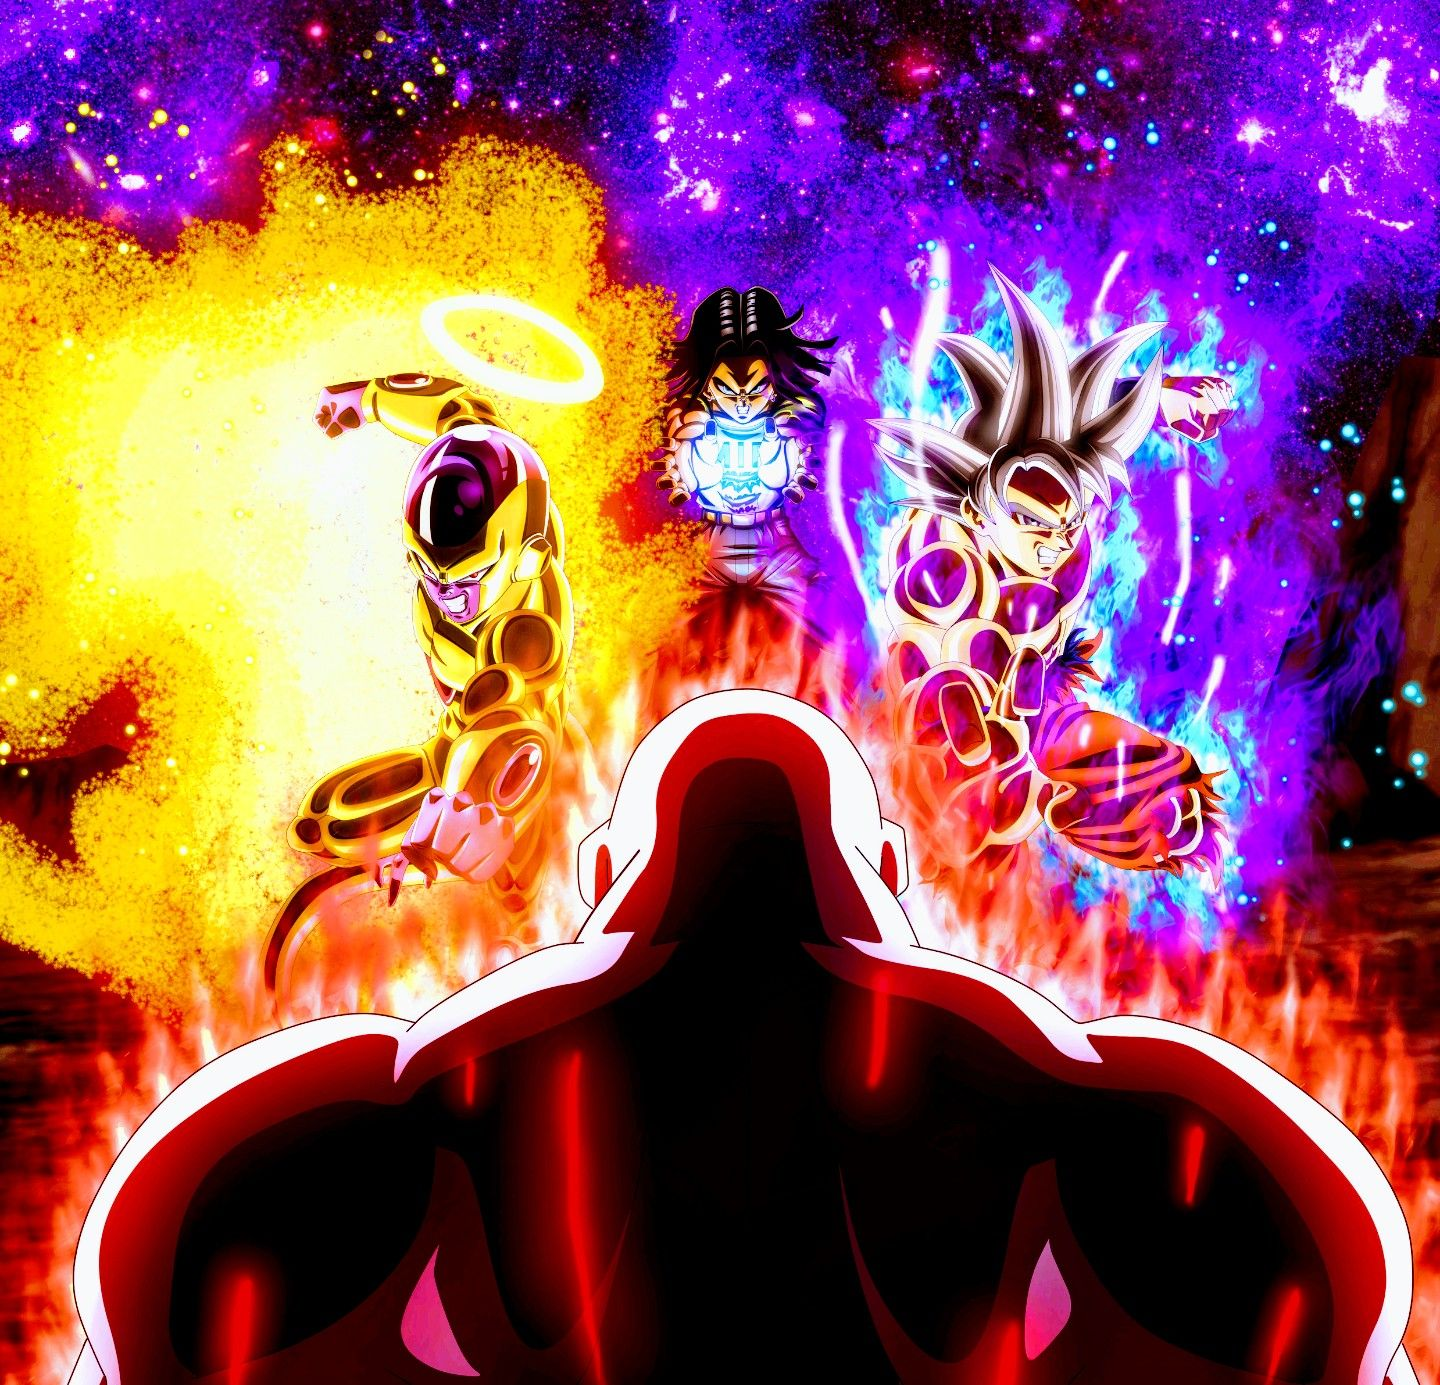 Goku Frieza Android 17 Vs Jiren Dragon Ball Super Anime Dragon Ball Super Anime Dragon Ball Dragon Ball Wallpapers